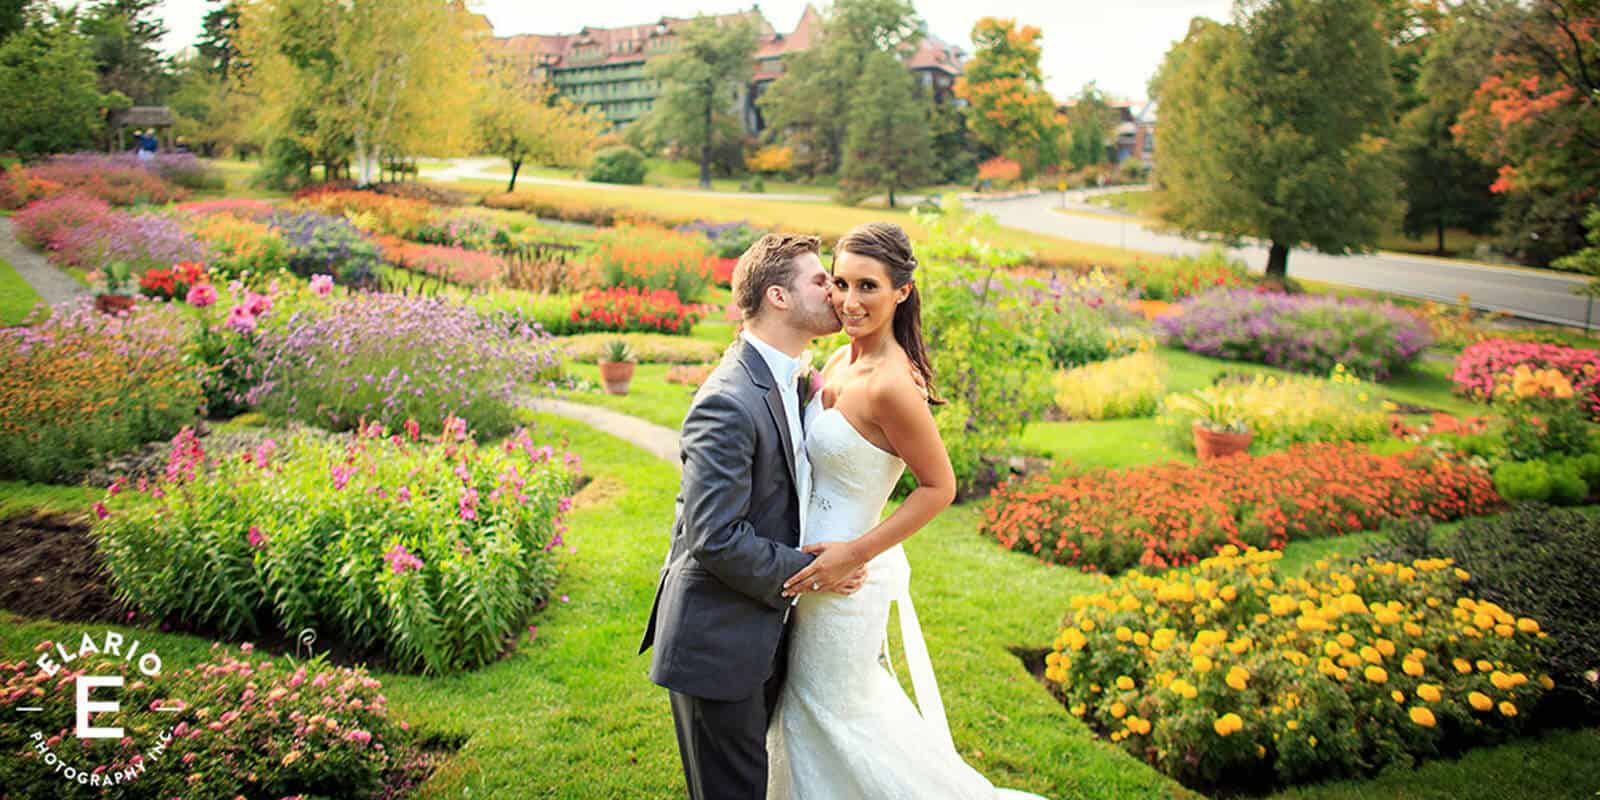 Wedding Photo at Formal Garden